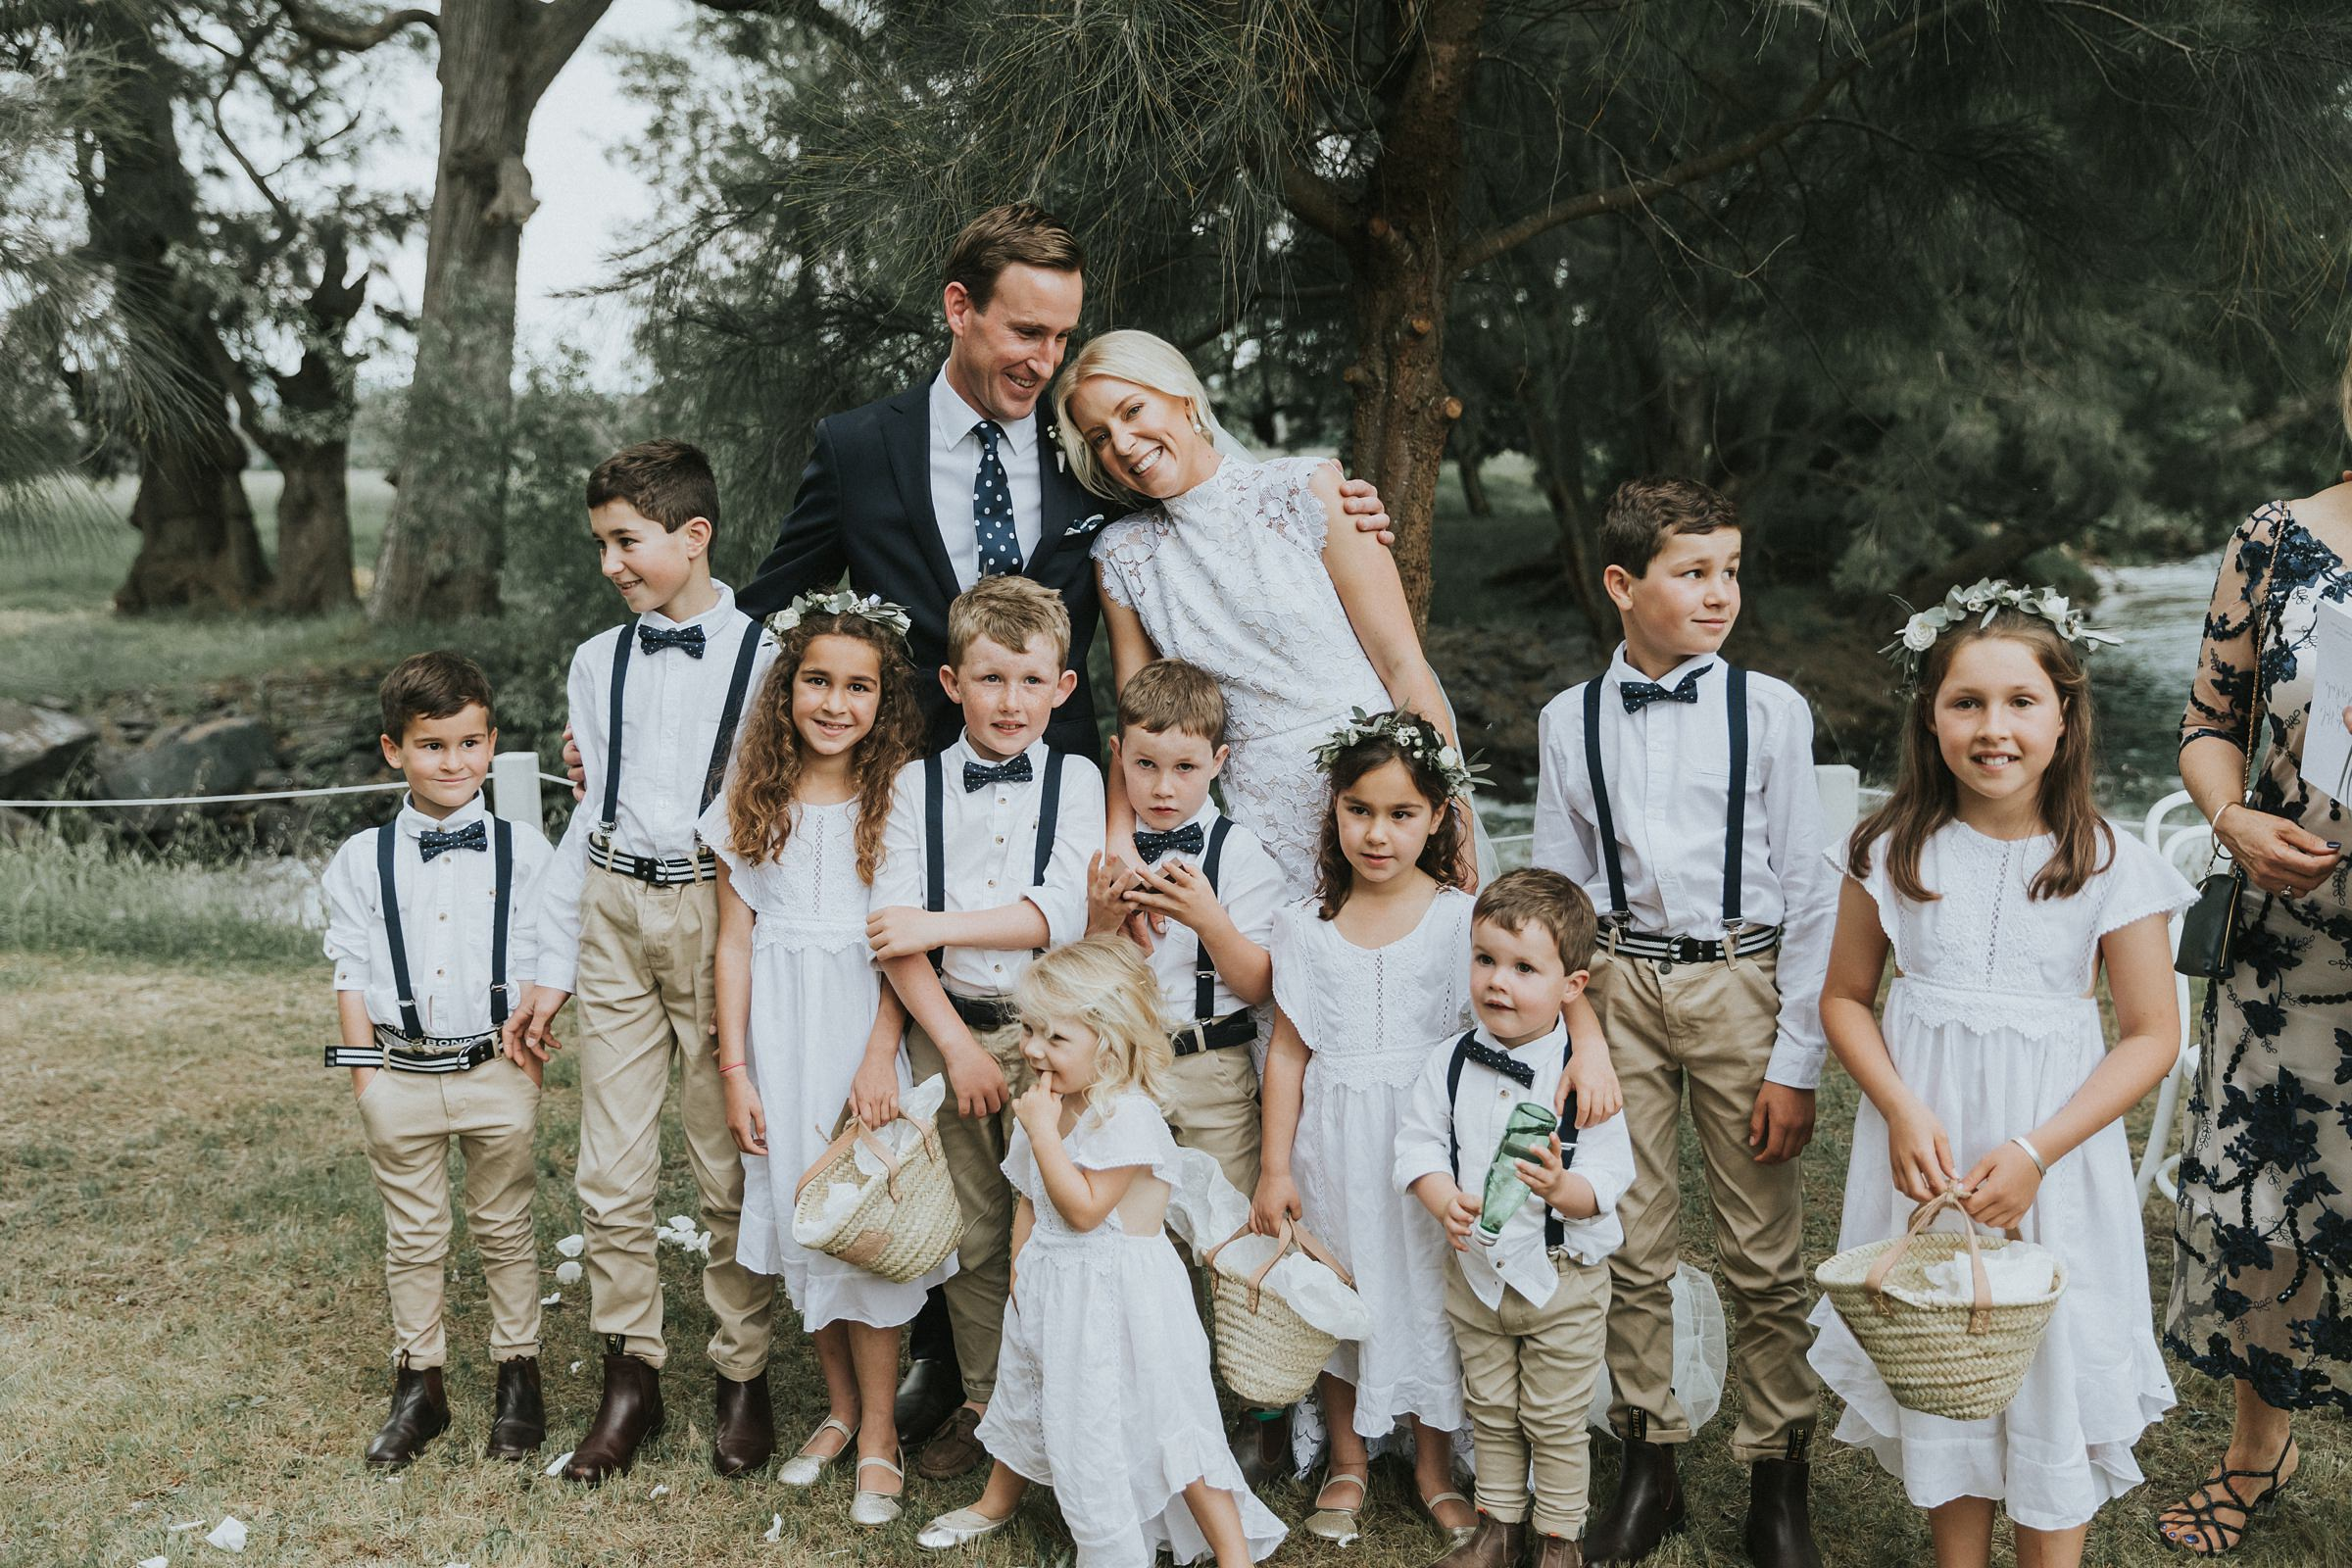 kids circle around the bride and groom after wedding ceremony